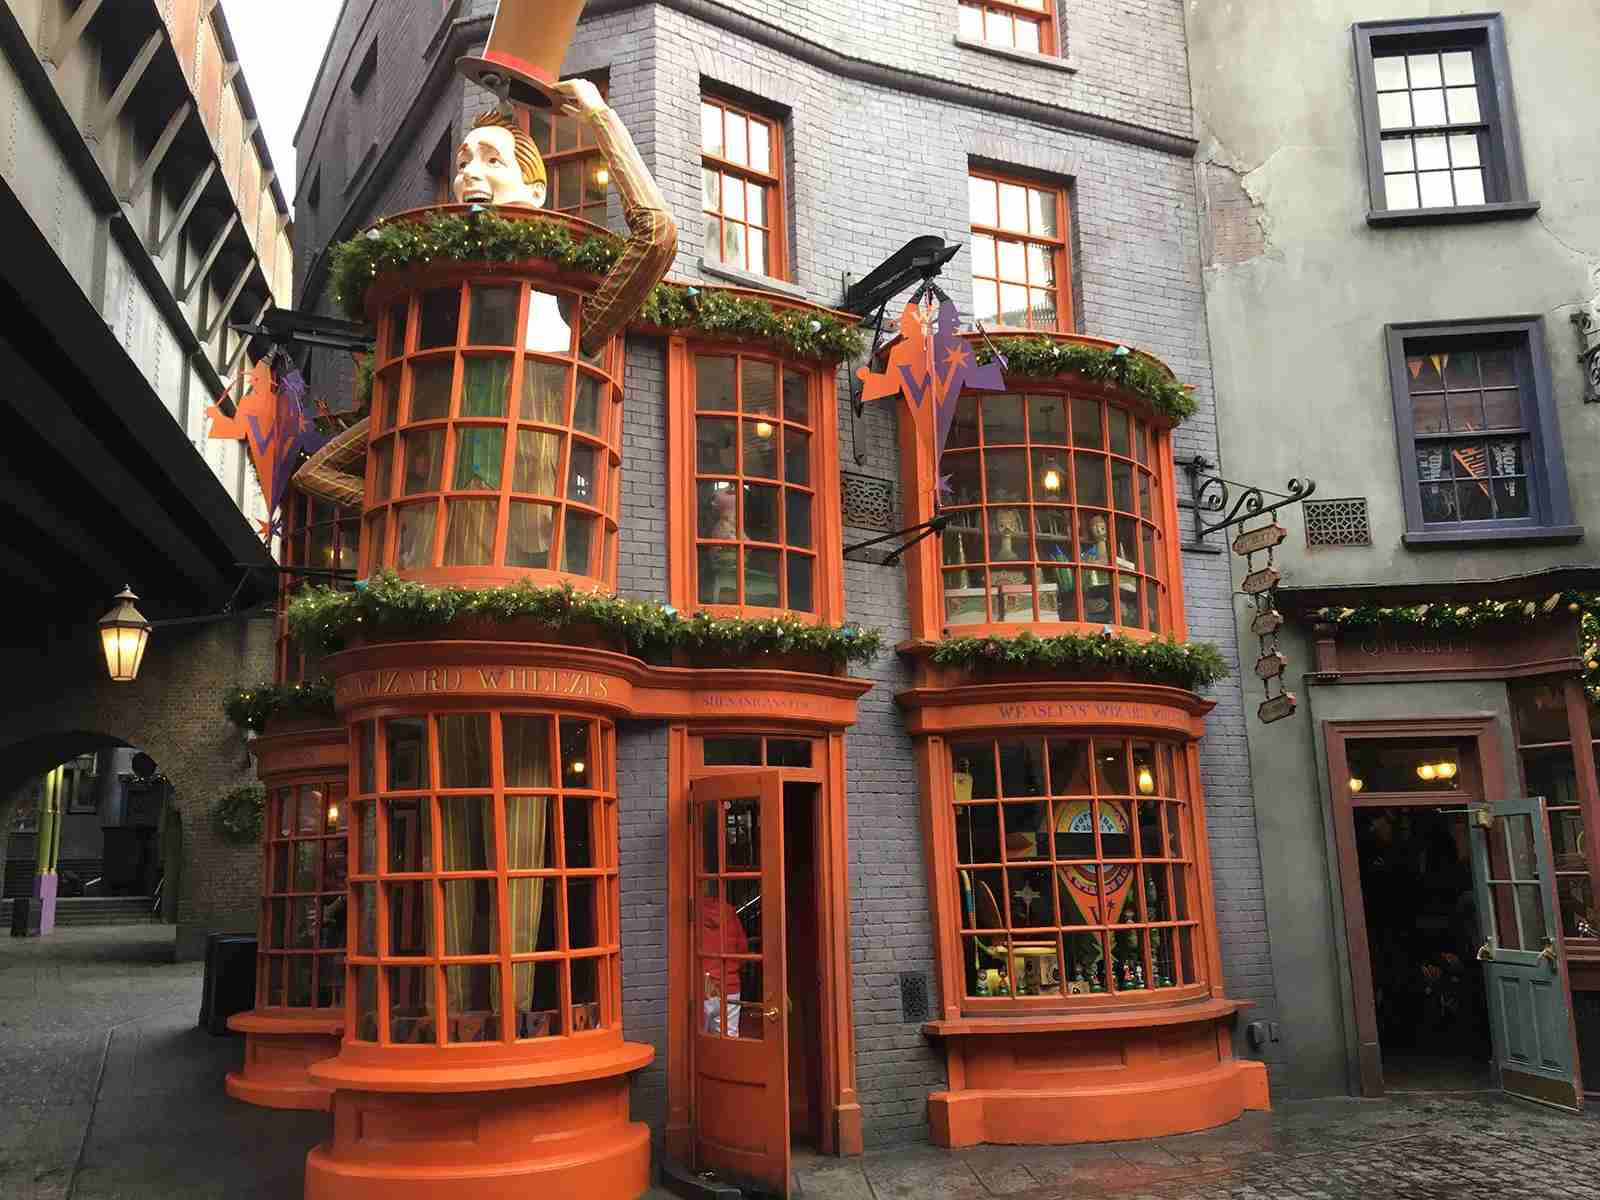 Diagon Alley (Photo by Andrea M. Rotondo/The Points Guy.)